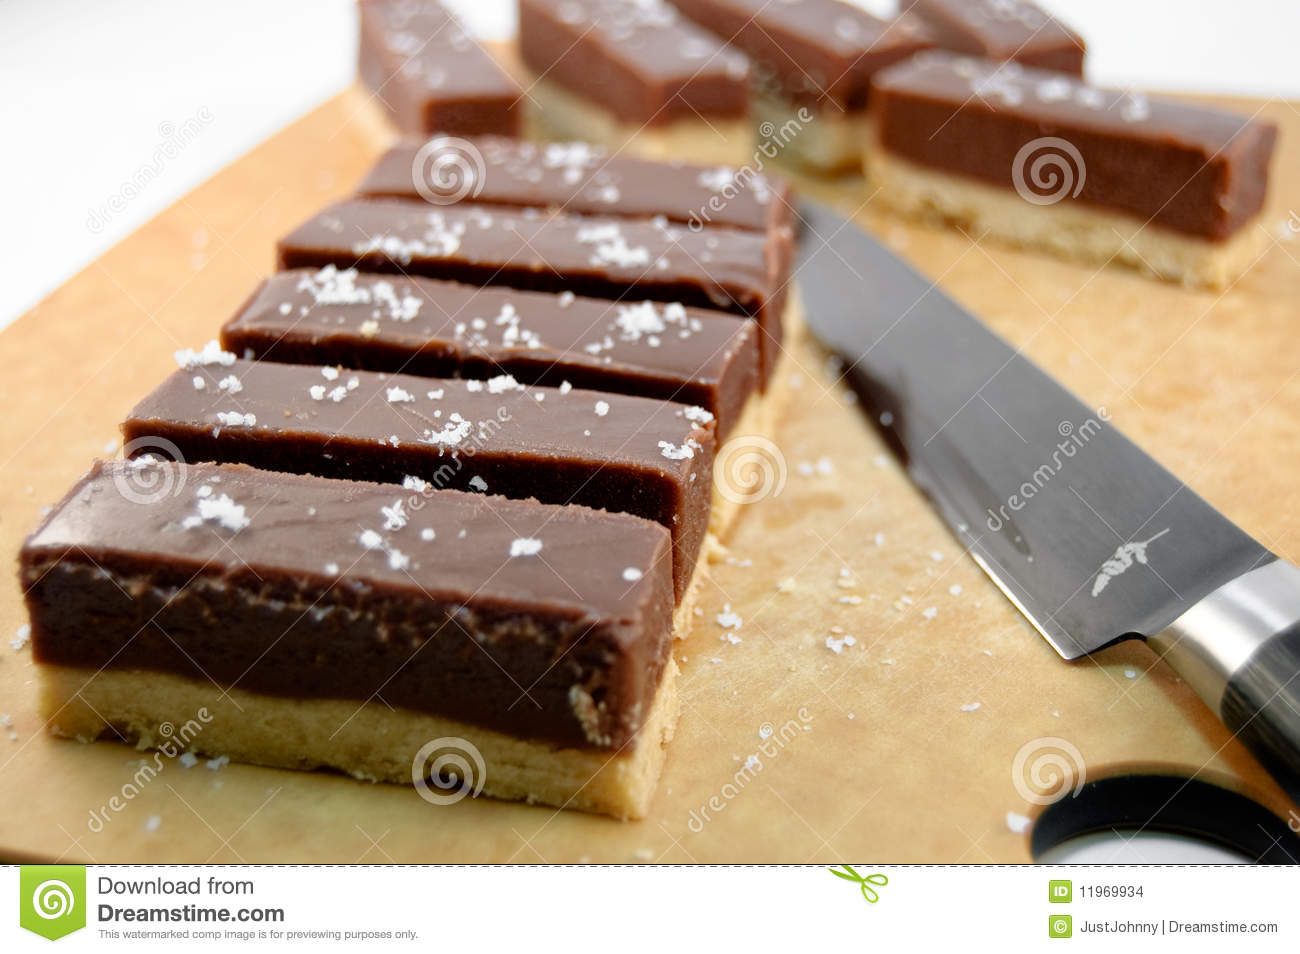 Chocolate-Caramel Cookie Bars Stock Images - Image: 11969934